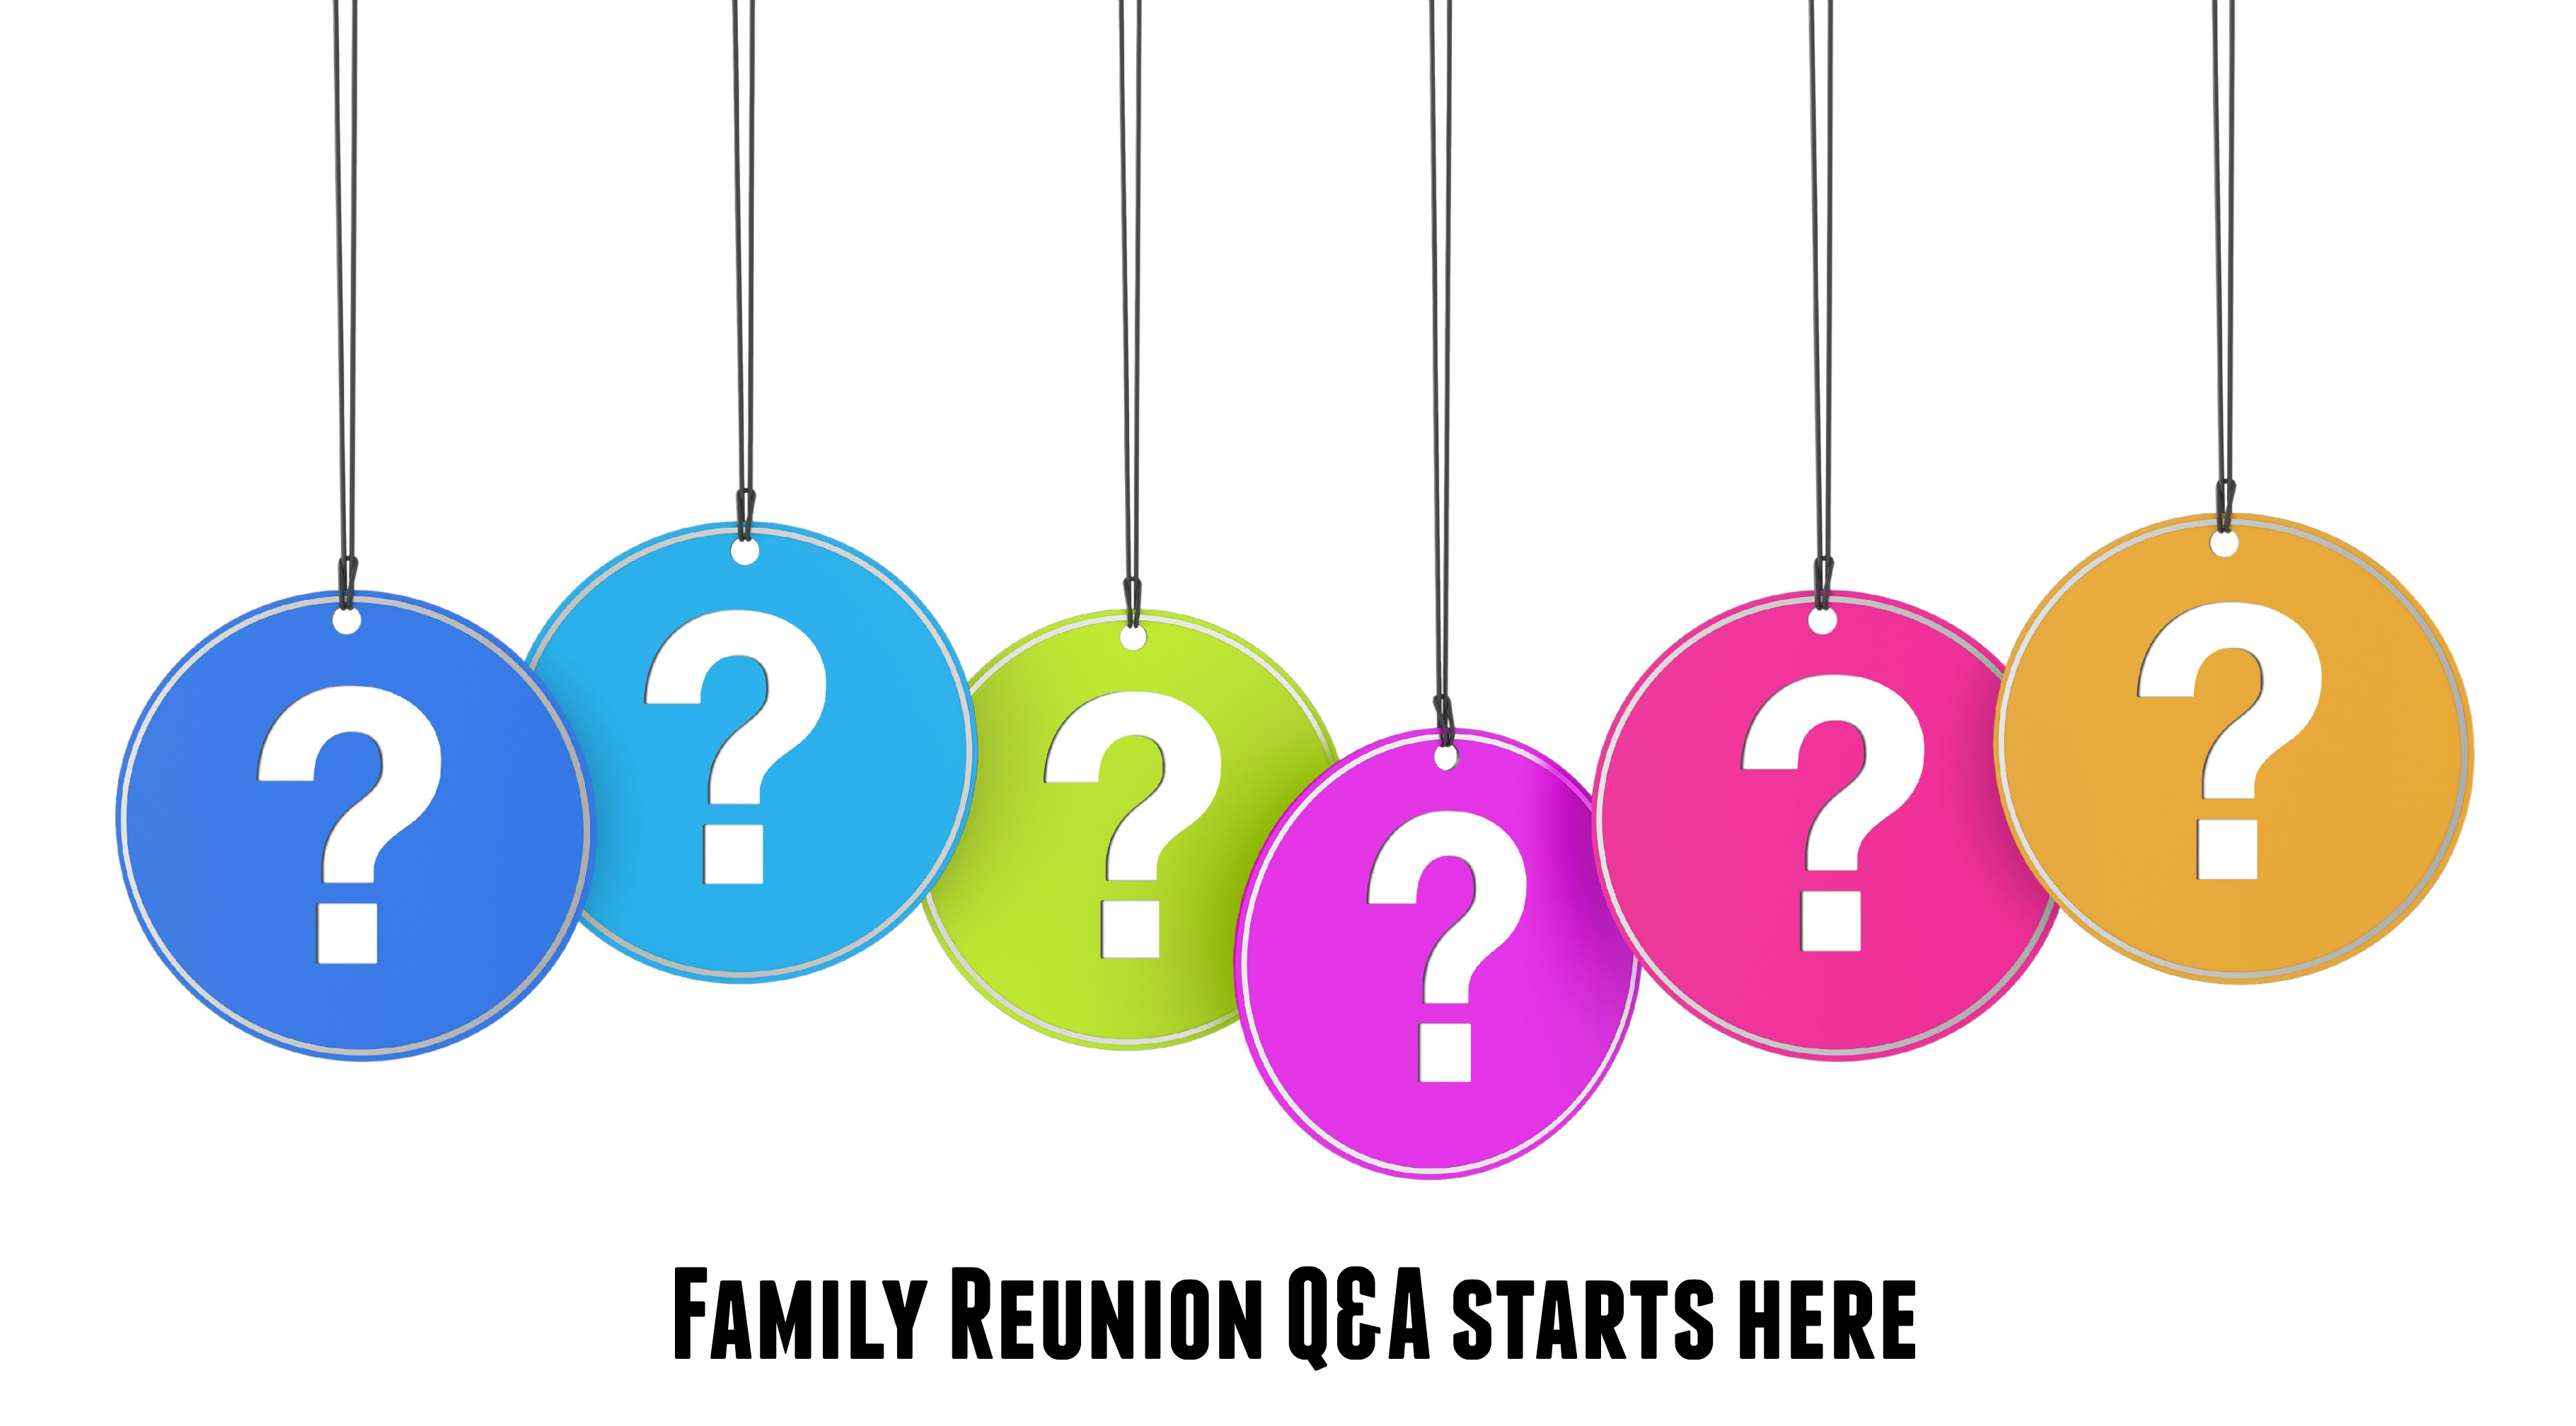 3641x2016 Family Reunion Questions Answered